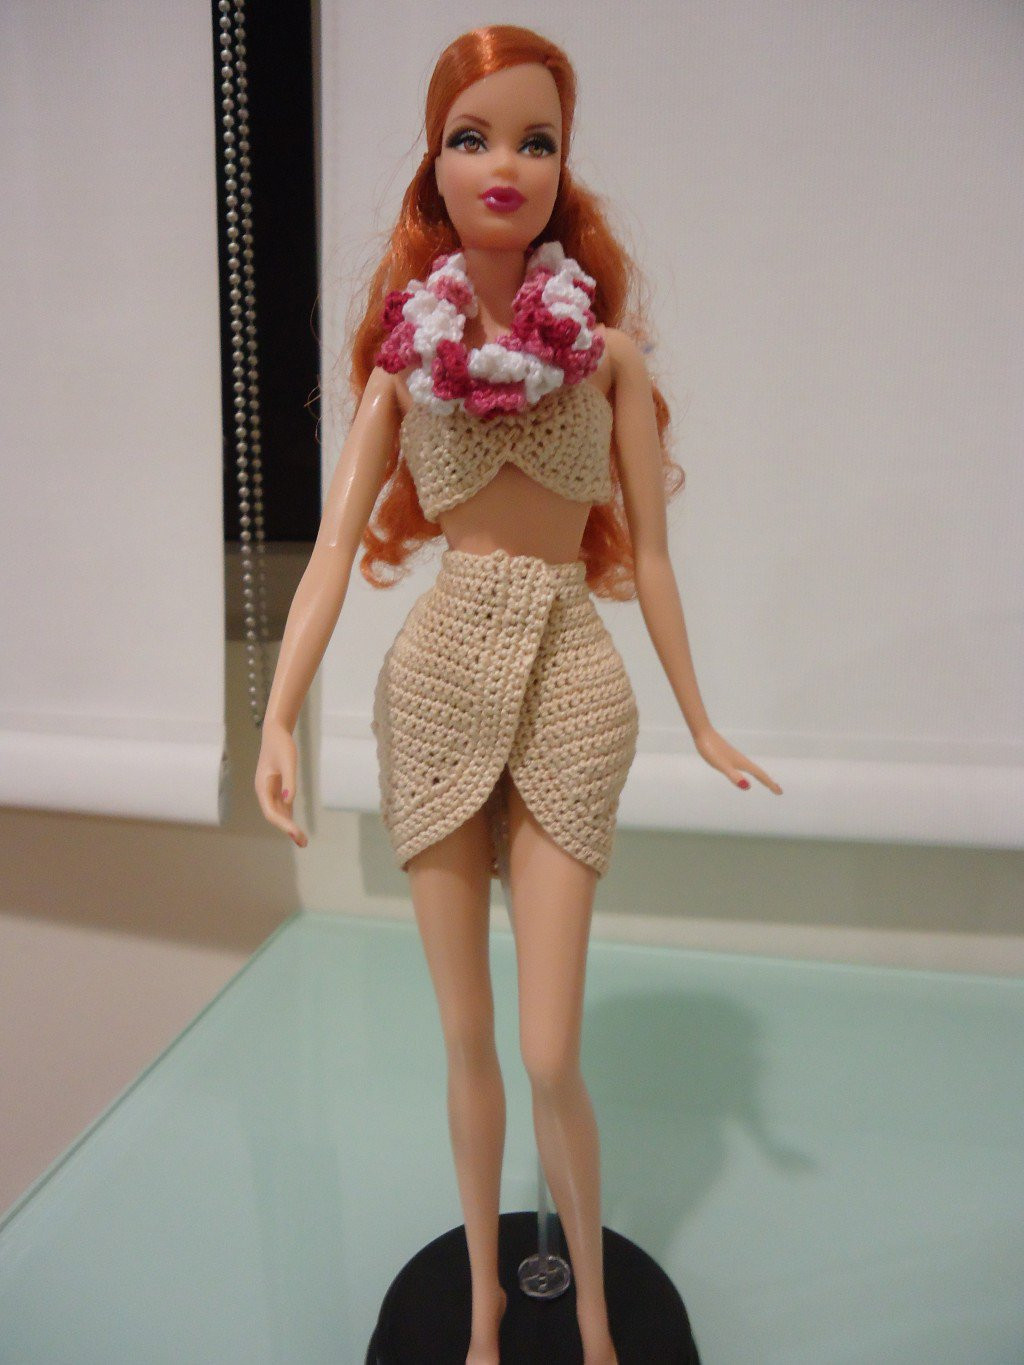 Crochet Clothes for Your Barbie Doll Tips and Free